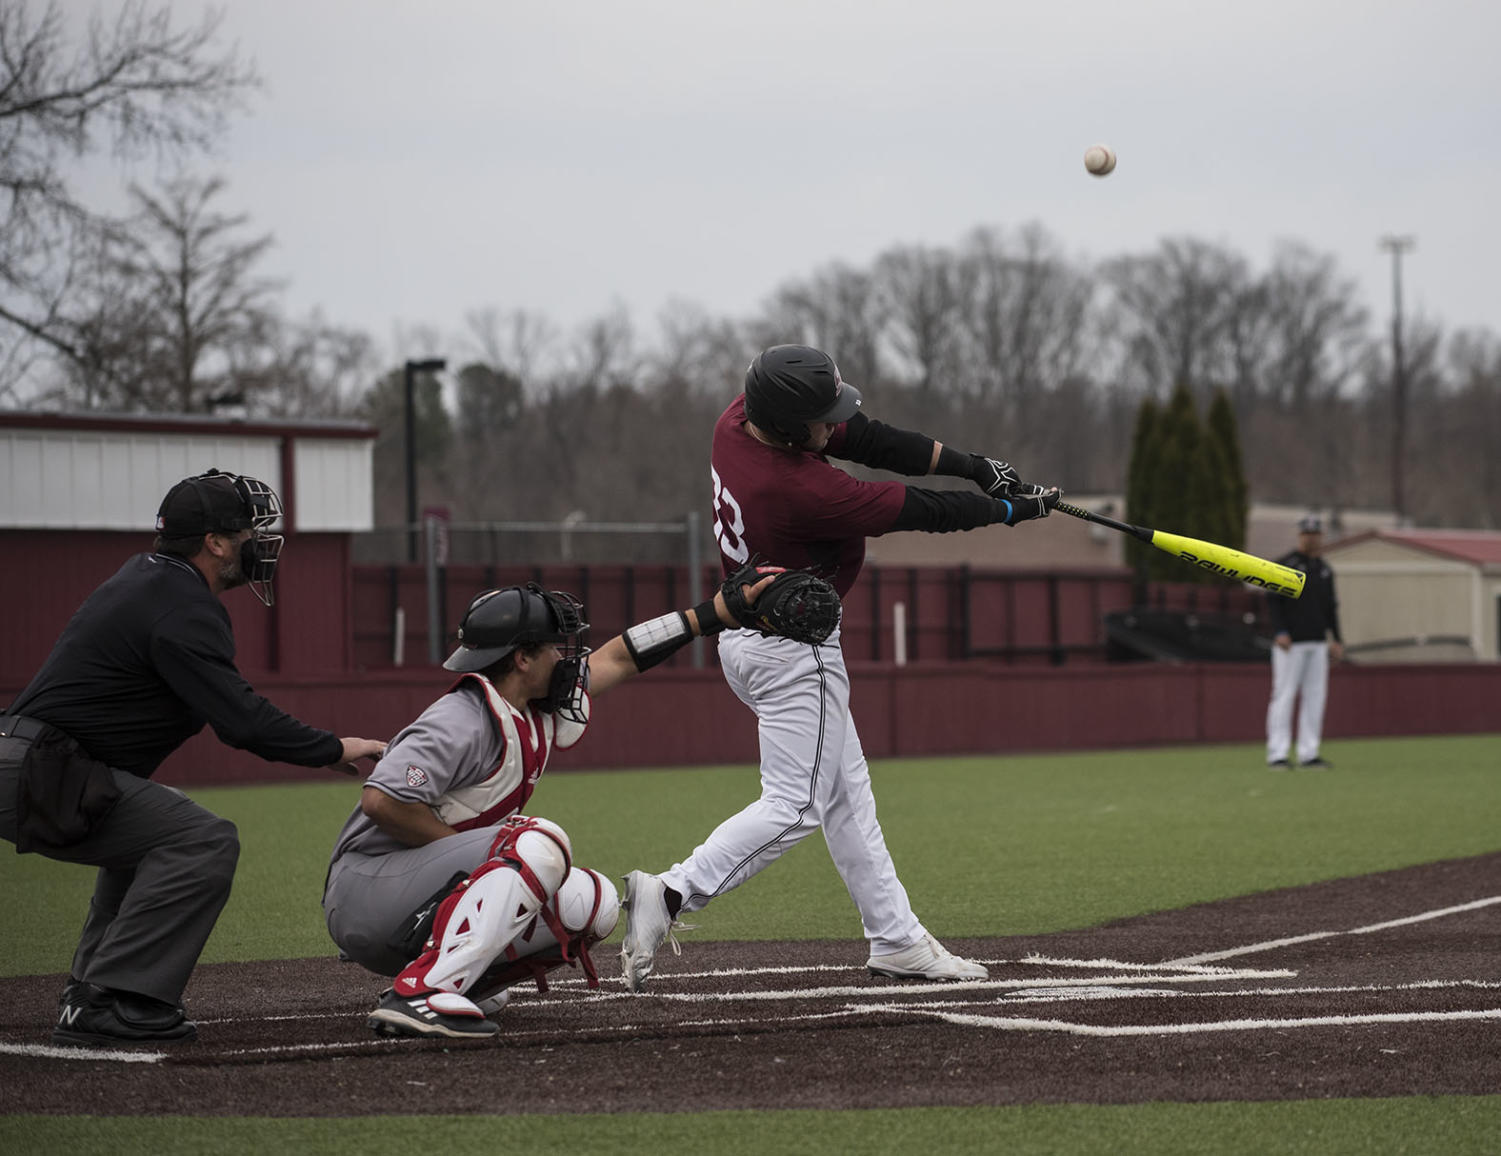 Senior infielder Hunter Anderson bats the ball Friday, March 9, 2018, during the Salukis' 4-0 win against Northern Illinois University at Itchy Jones Stadium. (Nathan Dodd | @NathanMDodd)